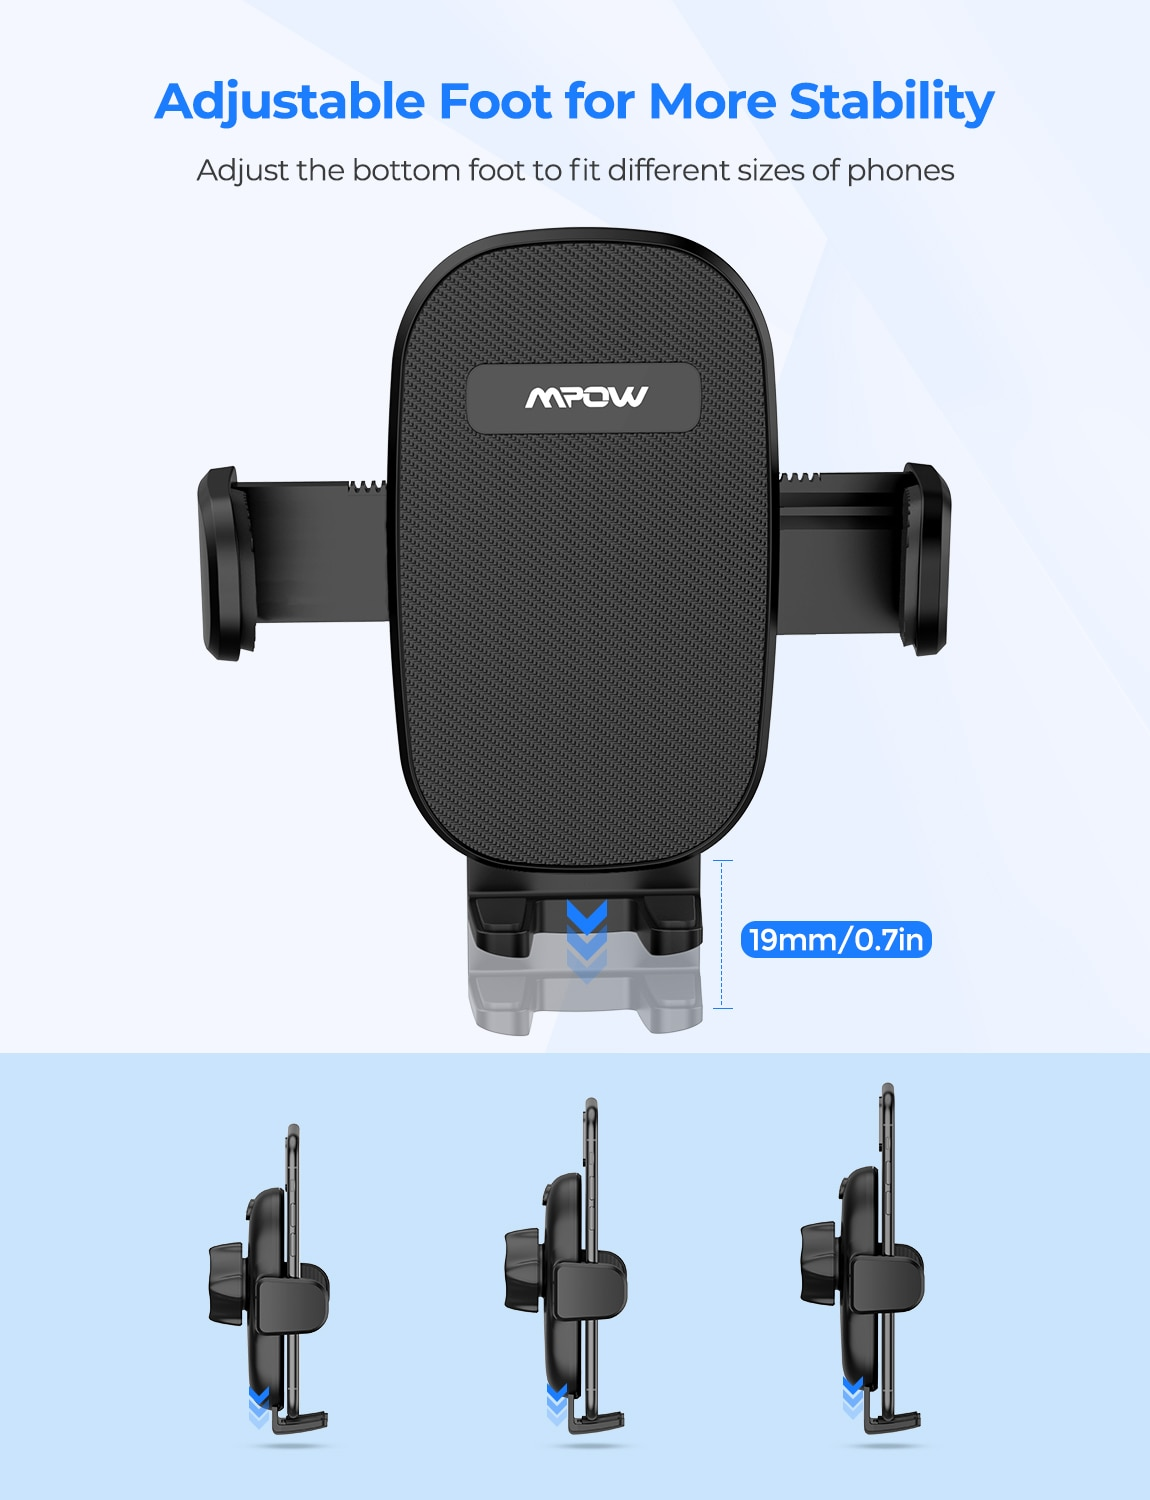 H7e6c0031147346e3a2f16eba2f283910p - MPOW CA158 Phone Mount Adjustable Cup Holder Car Mount with Long Gooseneck 360 Degrees Rotation Compatible with iPhone Galaxy